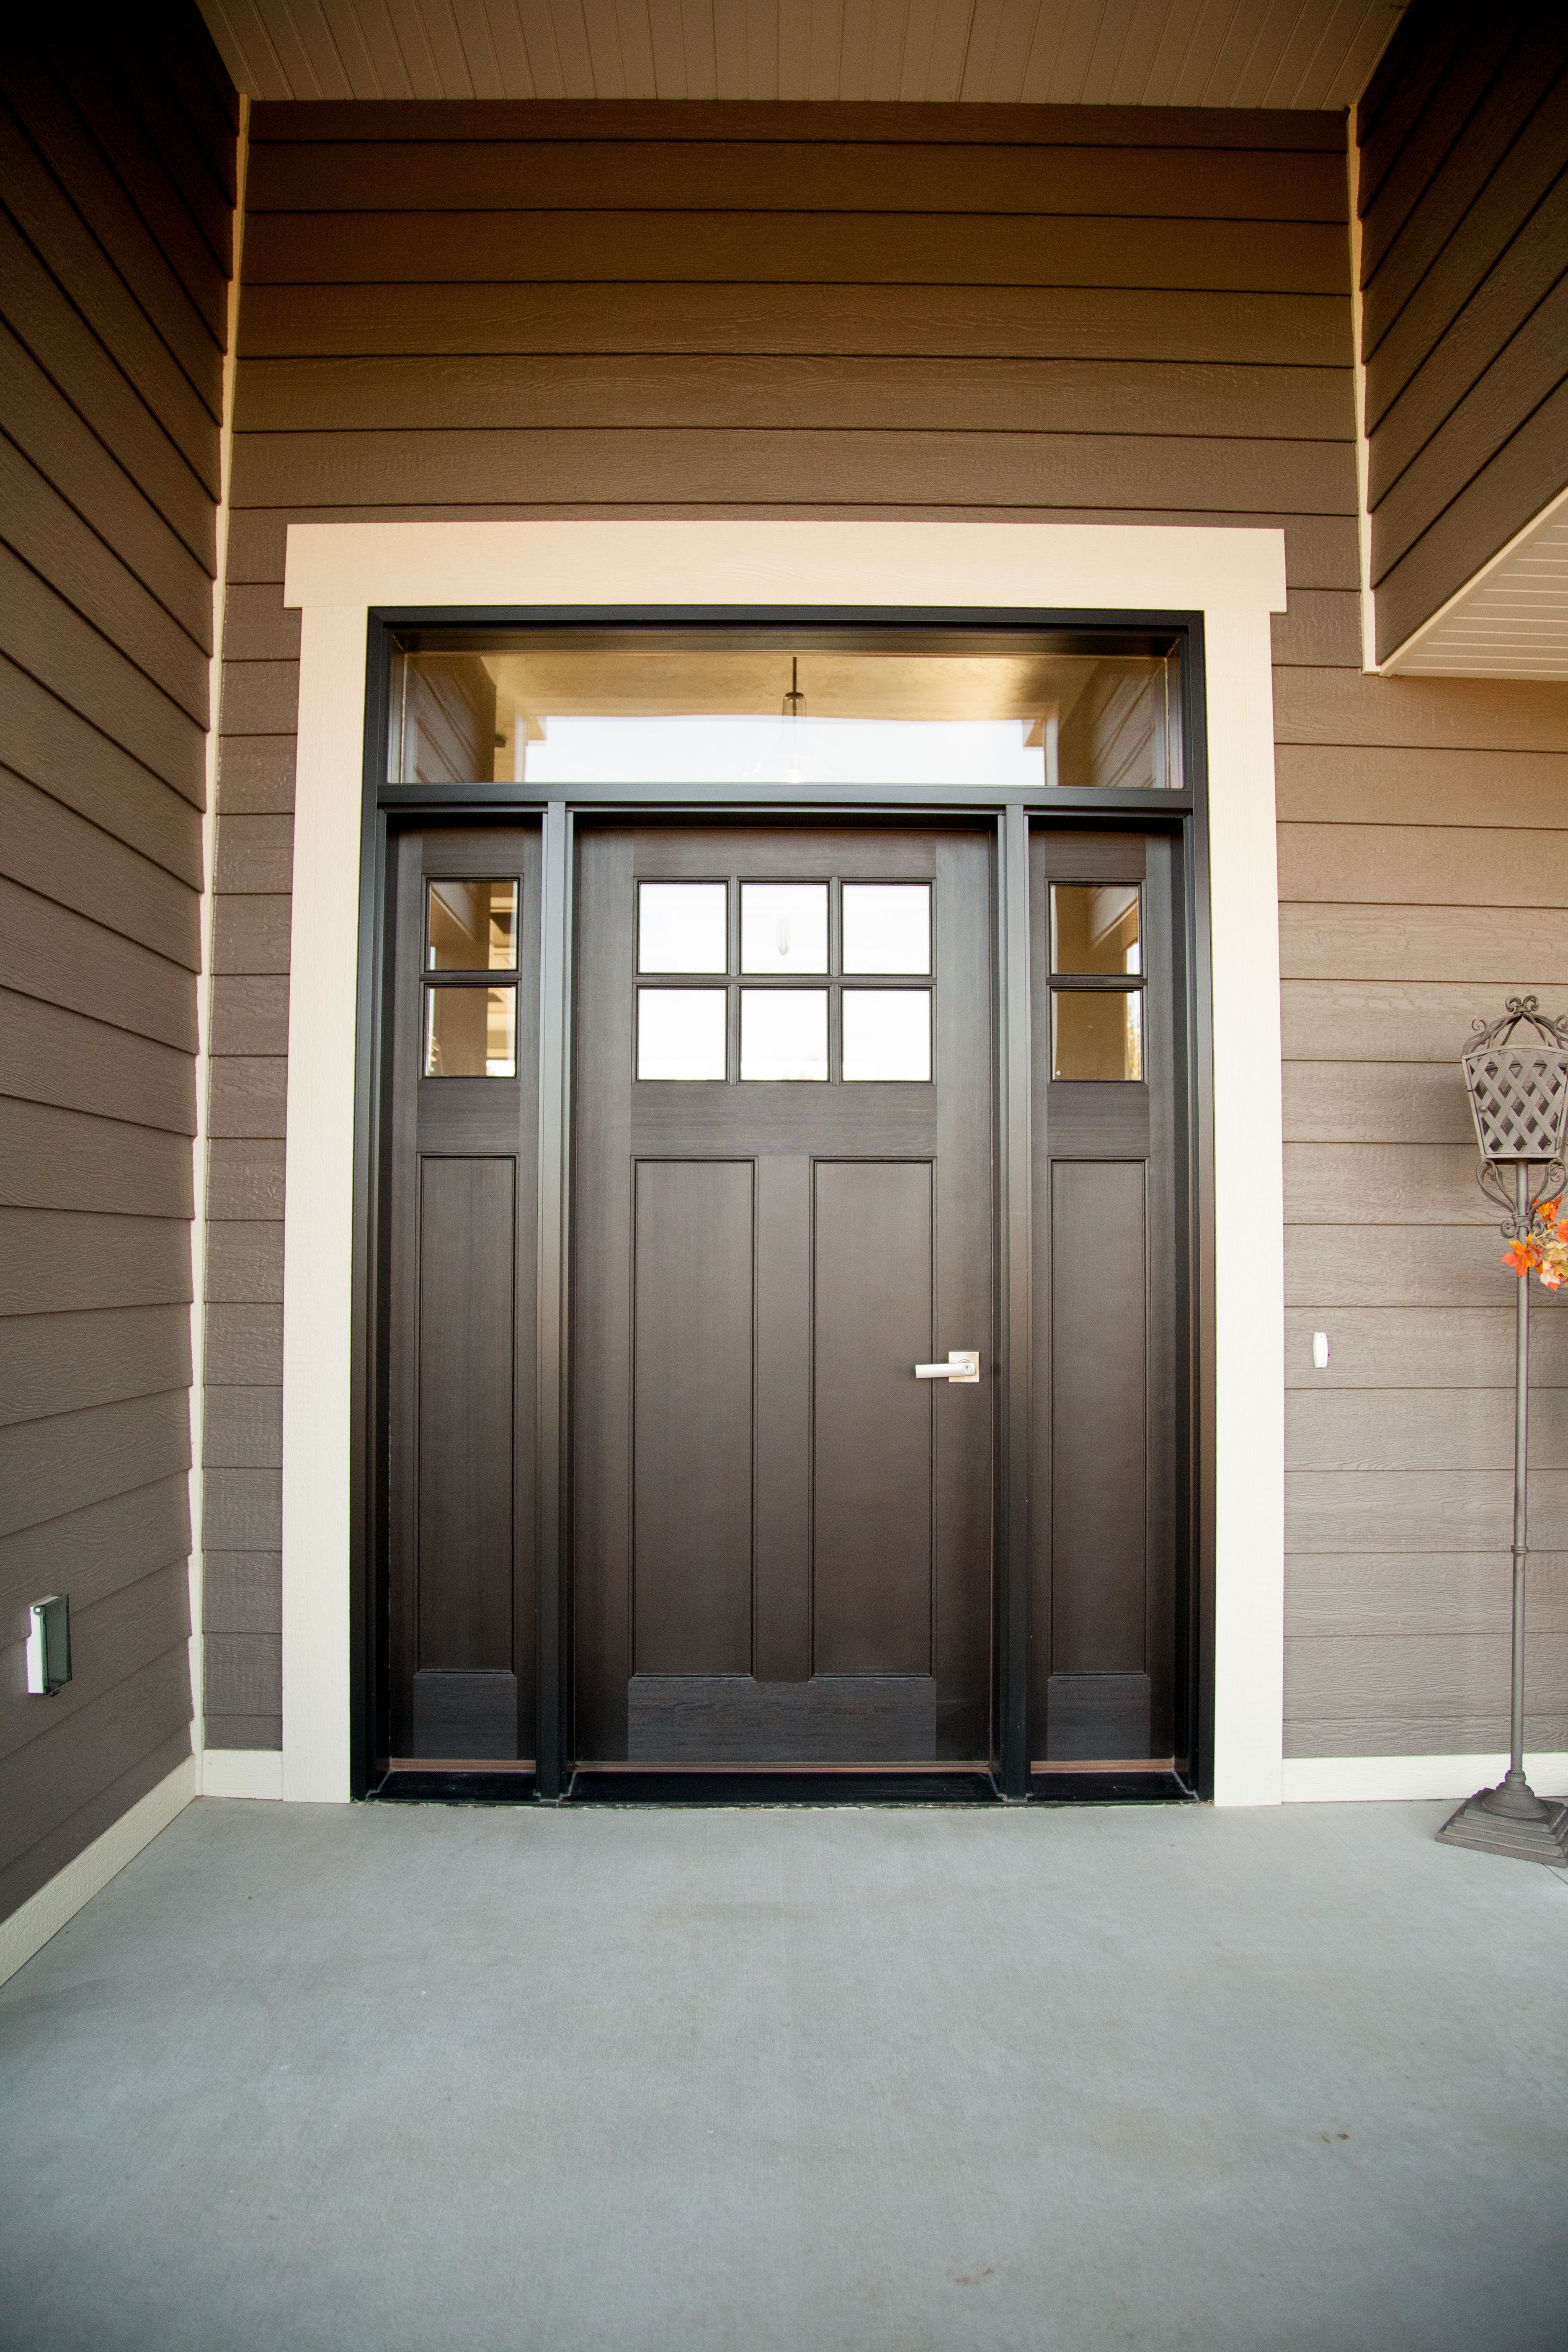 Exterior doors six lite craftsman style fiberglass door exterior doors six lite craftsman style fiberglass door stained ebony rubansaba